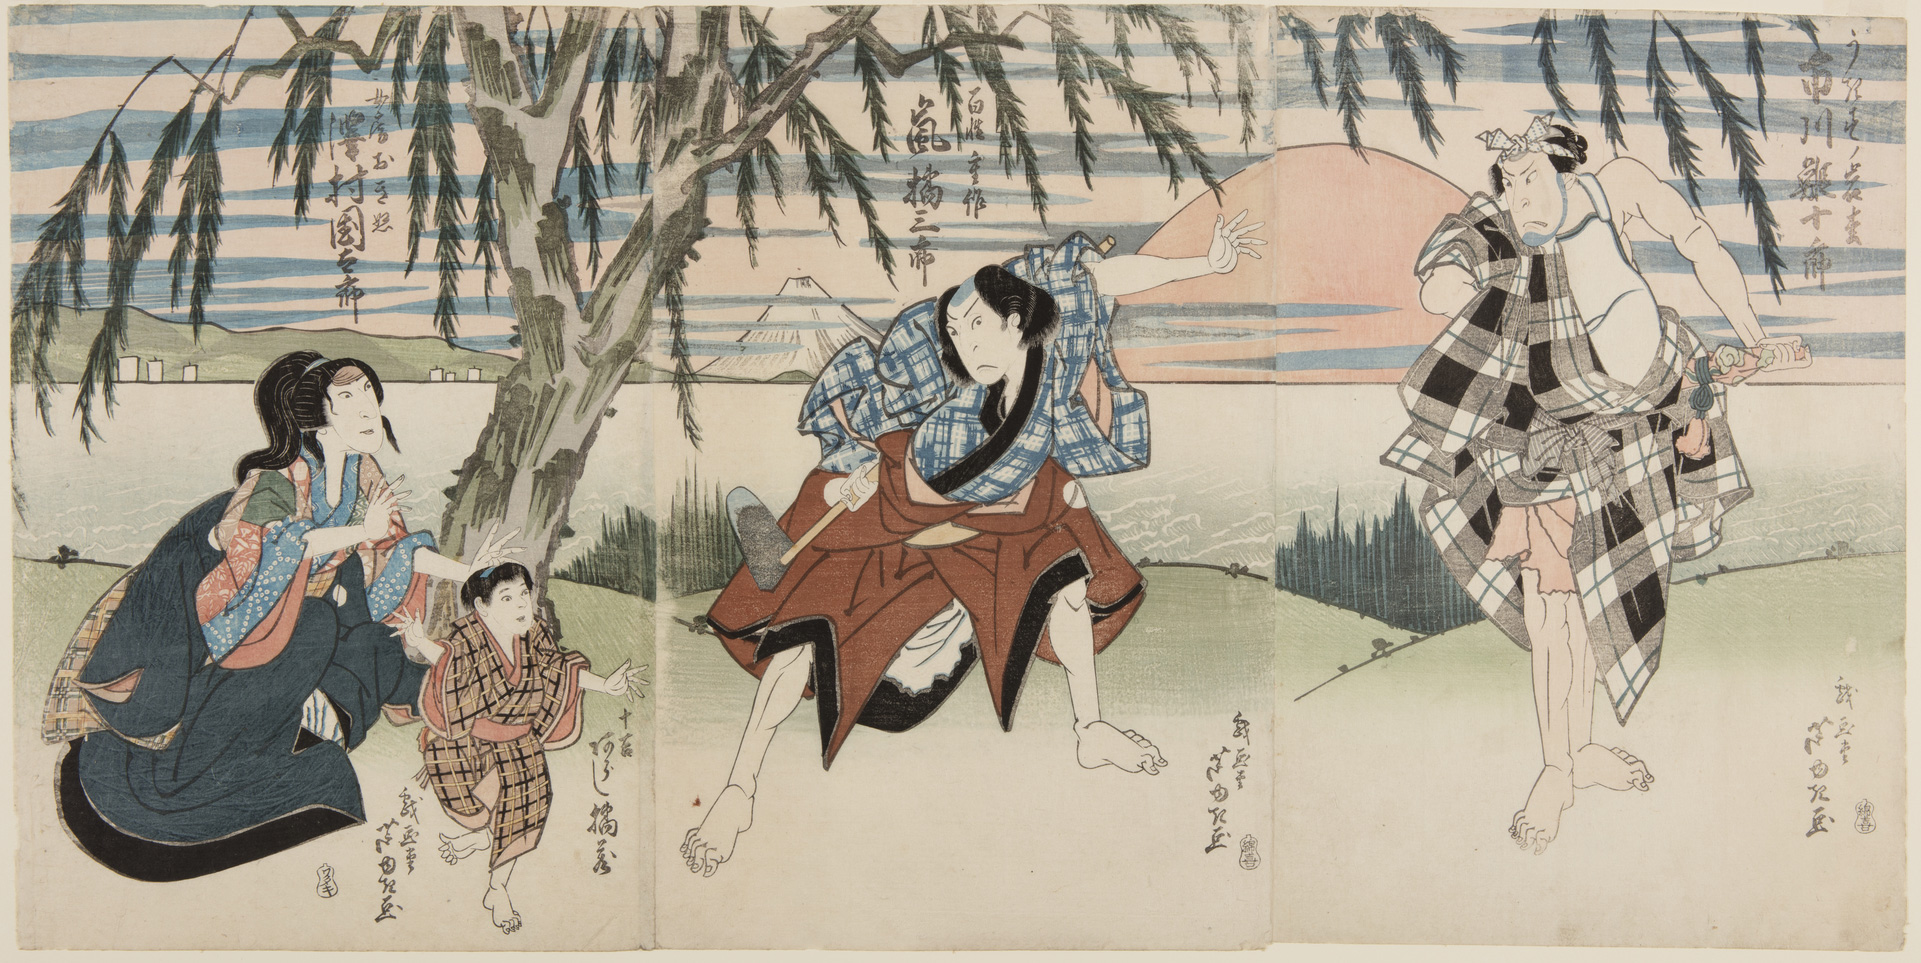 A Japanese print of a group of four actors in traditional dress in a landscape scene. To the left a female character is kneeling, arms outstretched. A child character stands in front of her. In the centre a male character looks at the child in a lunging pose. The final male character stands back but watches intently.